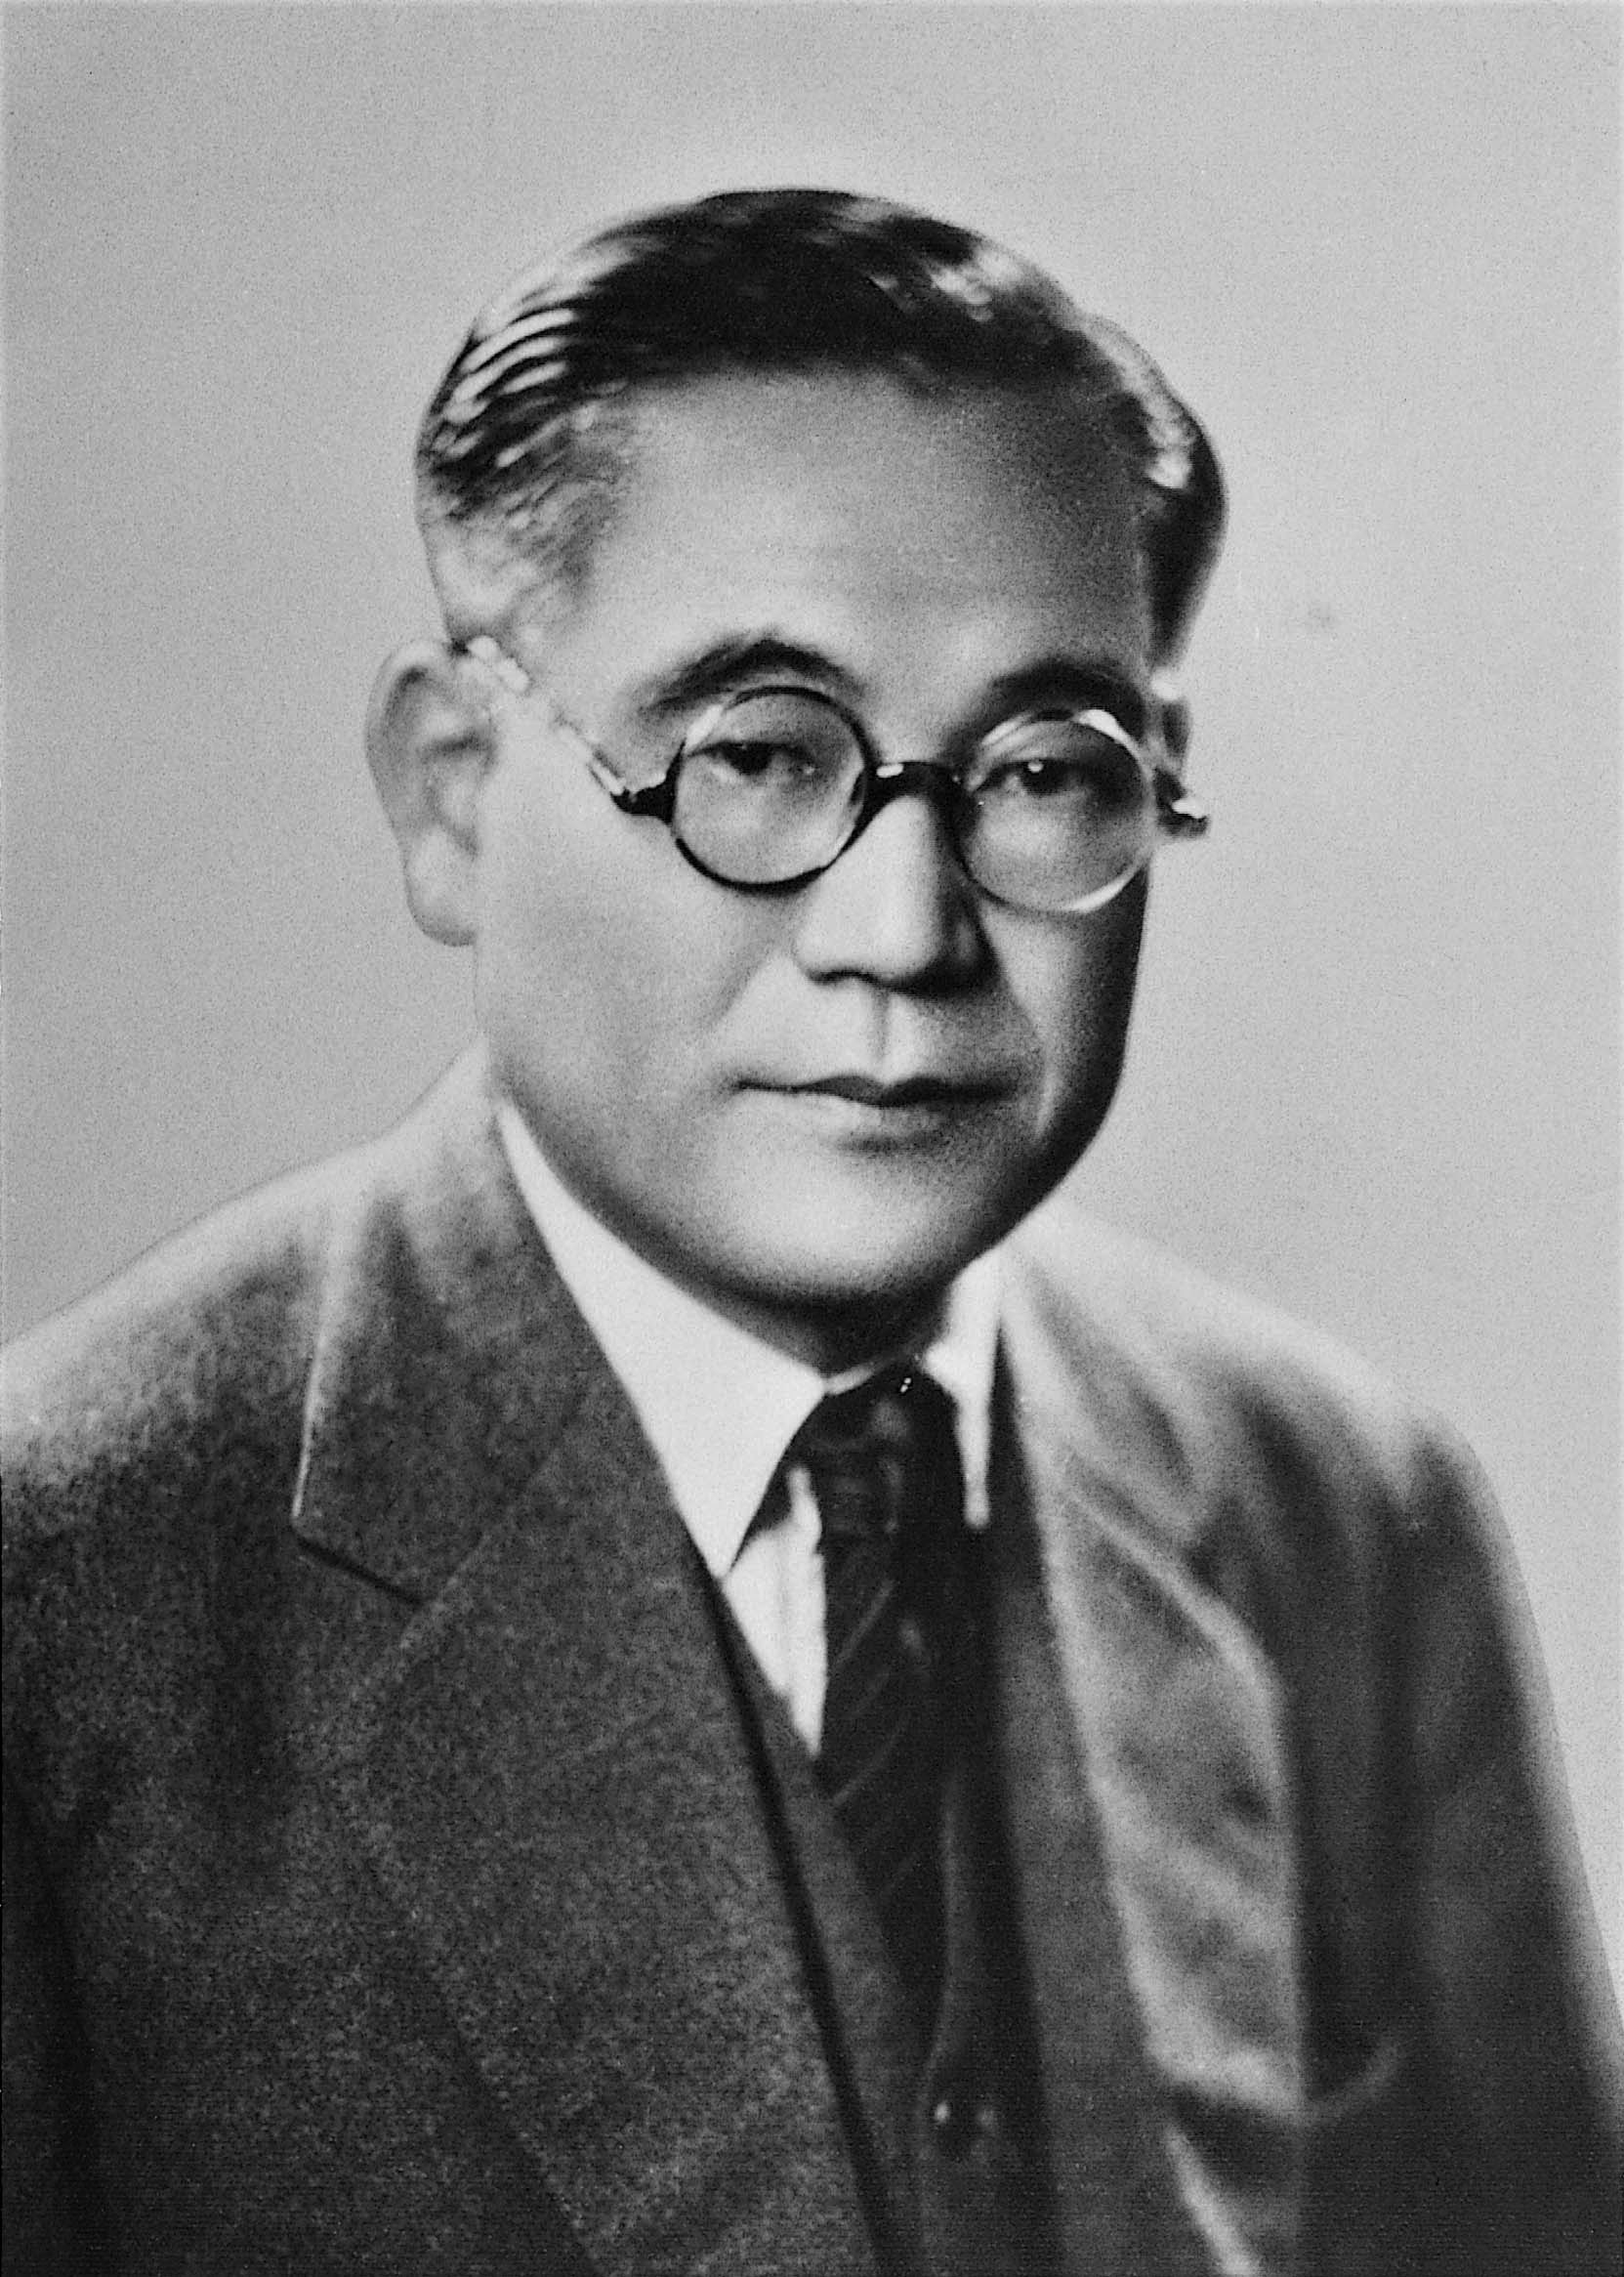 Young Age Toyoda from the Investor of Japan